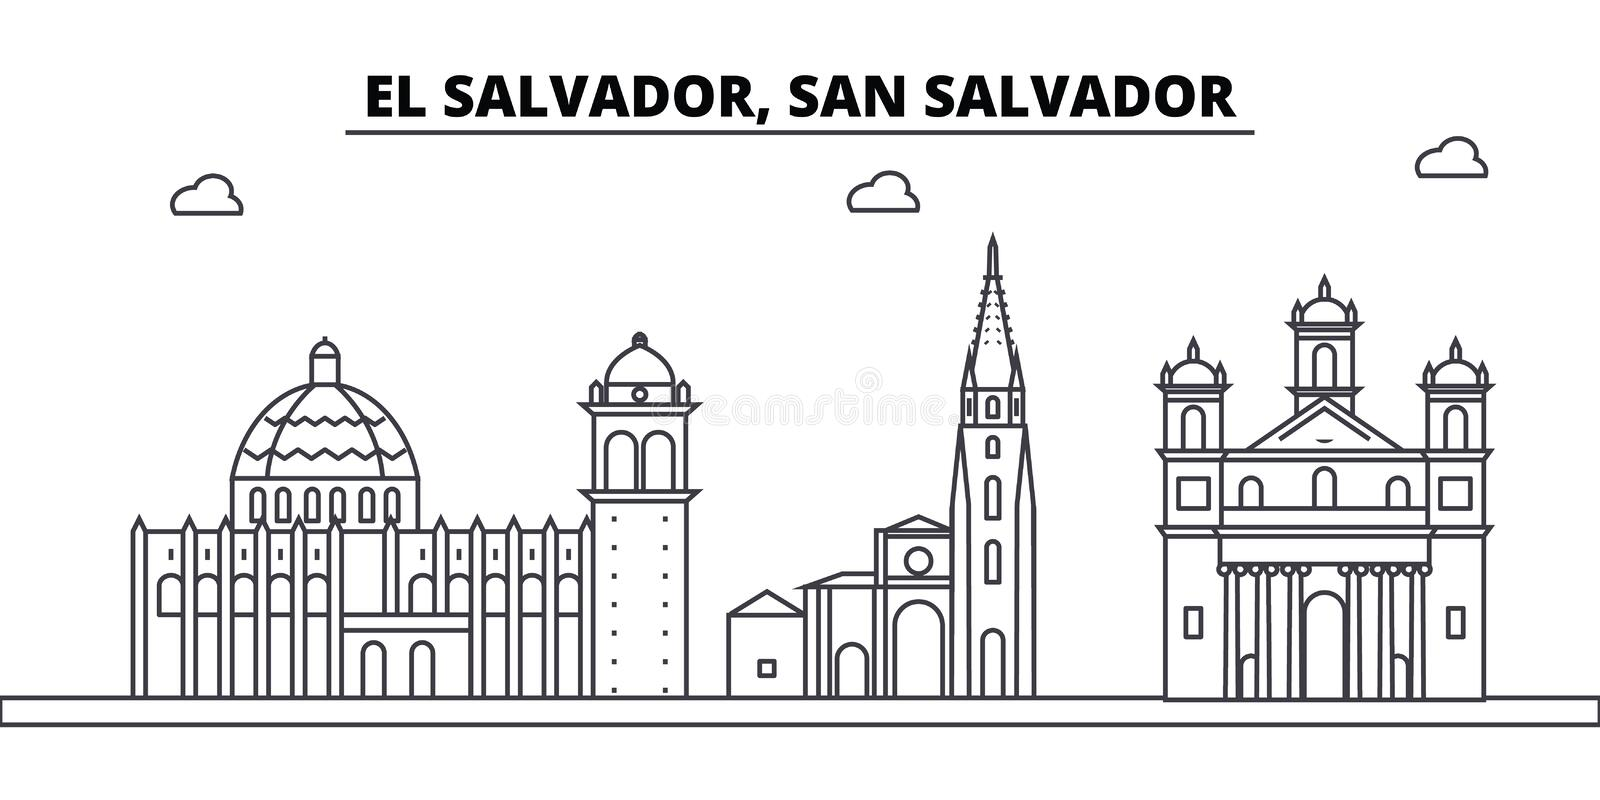 El Salvador, San Salvador architecture skyline buildings, silhouette, outline landscape, landmarks. Editable strokes royalty free illustration